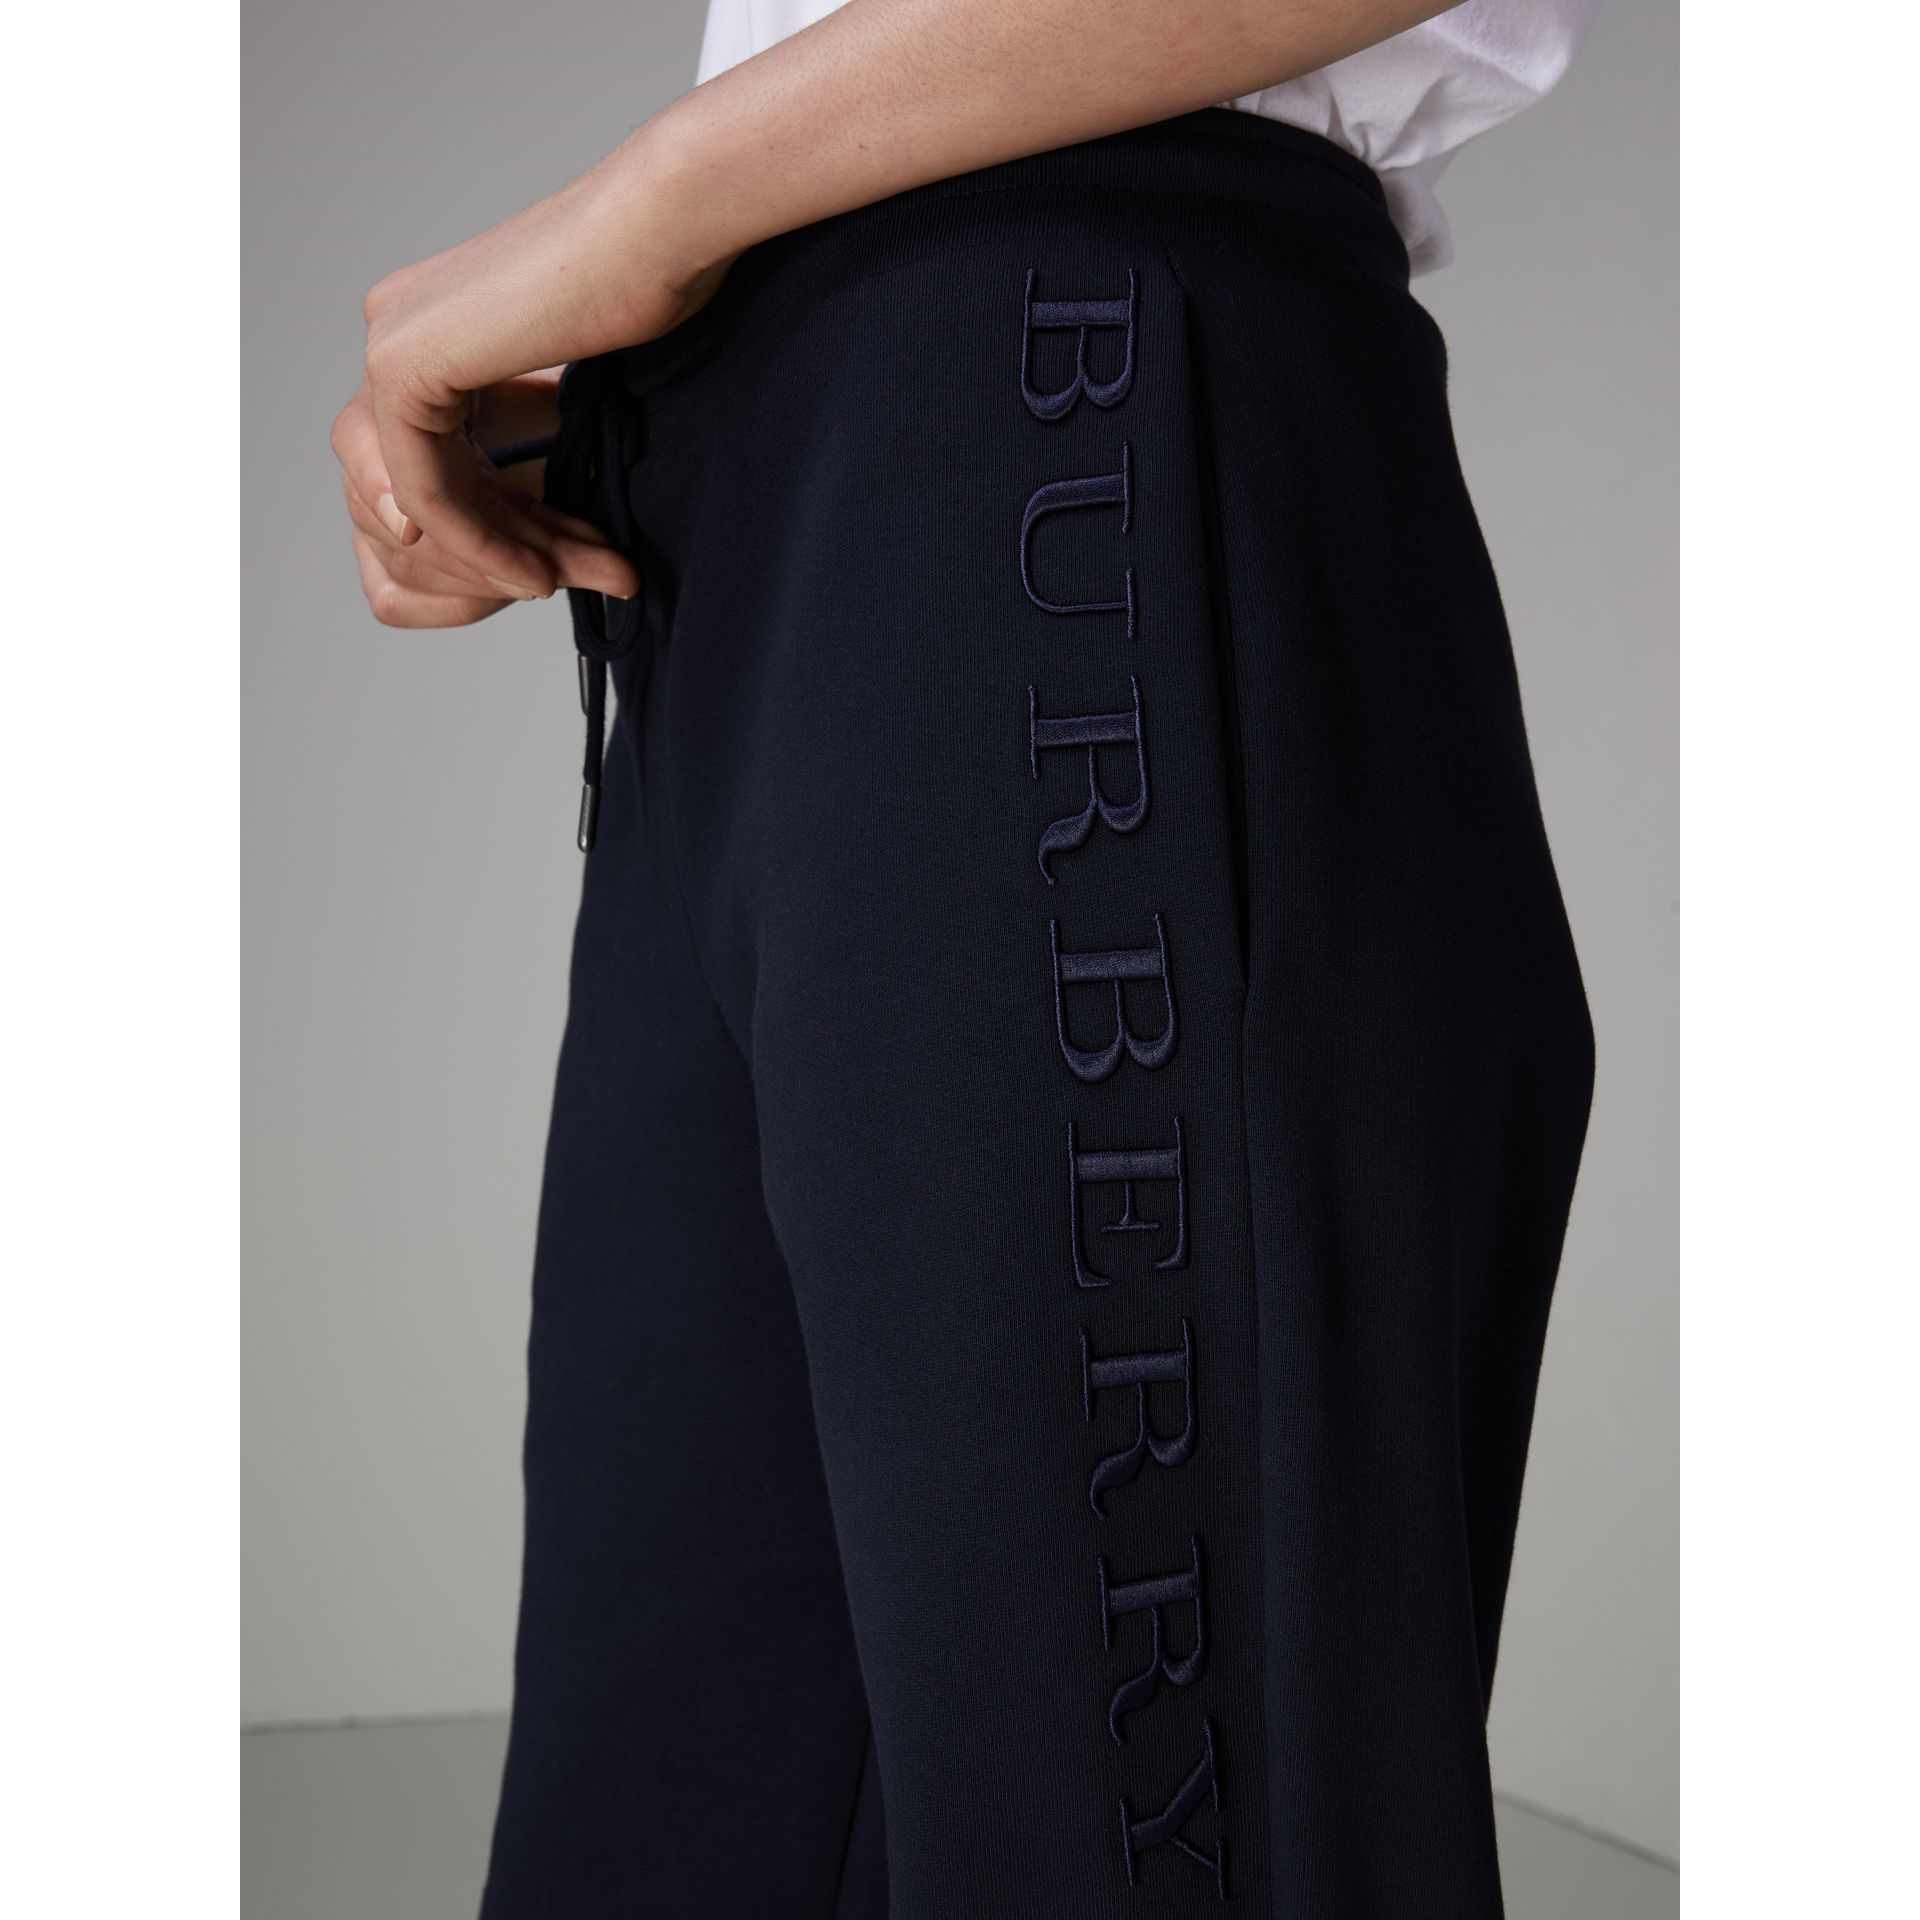 Embroidered Jersey Sweatpants in Navy - Women | Burberry - gallery image 1